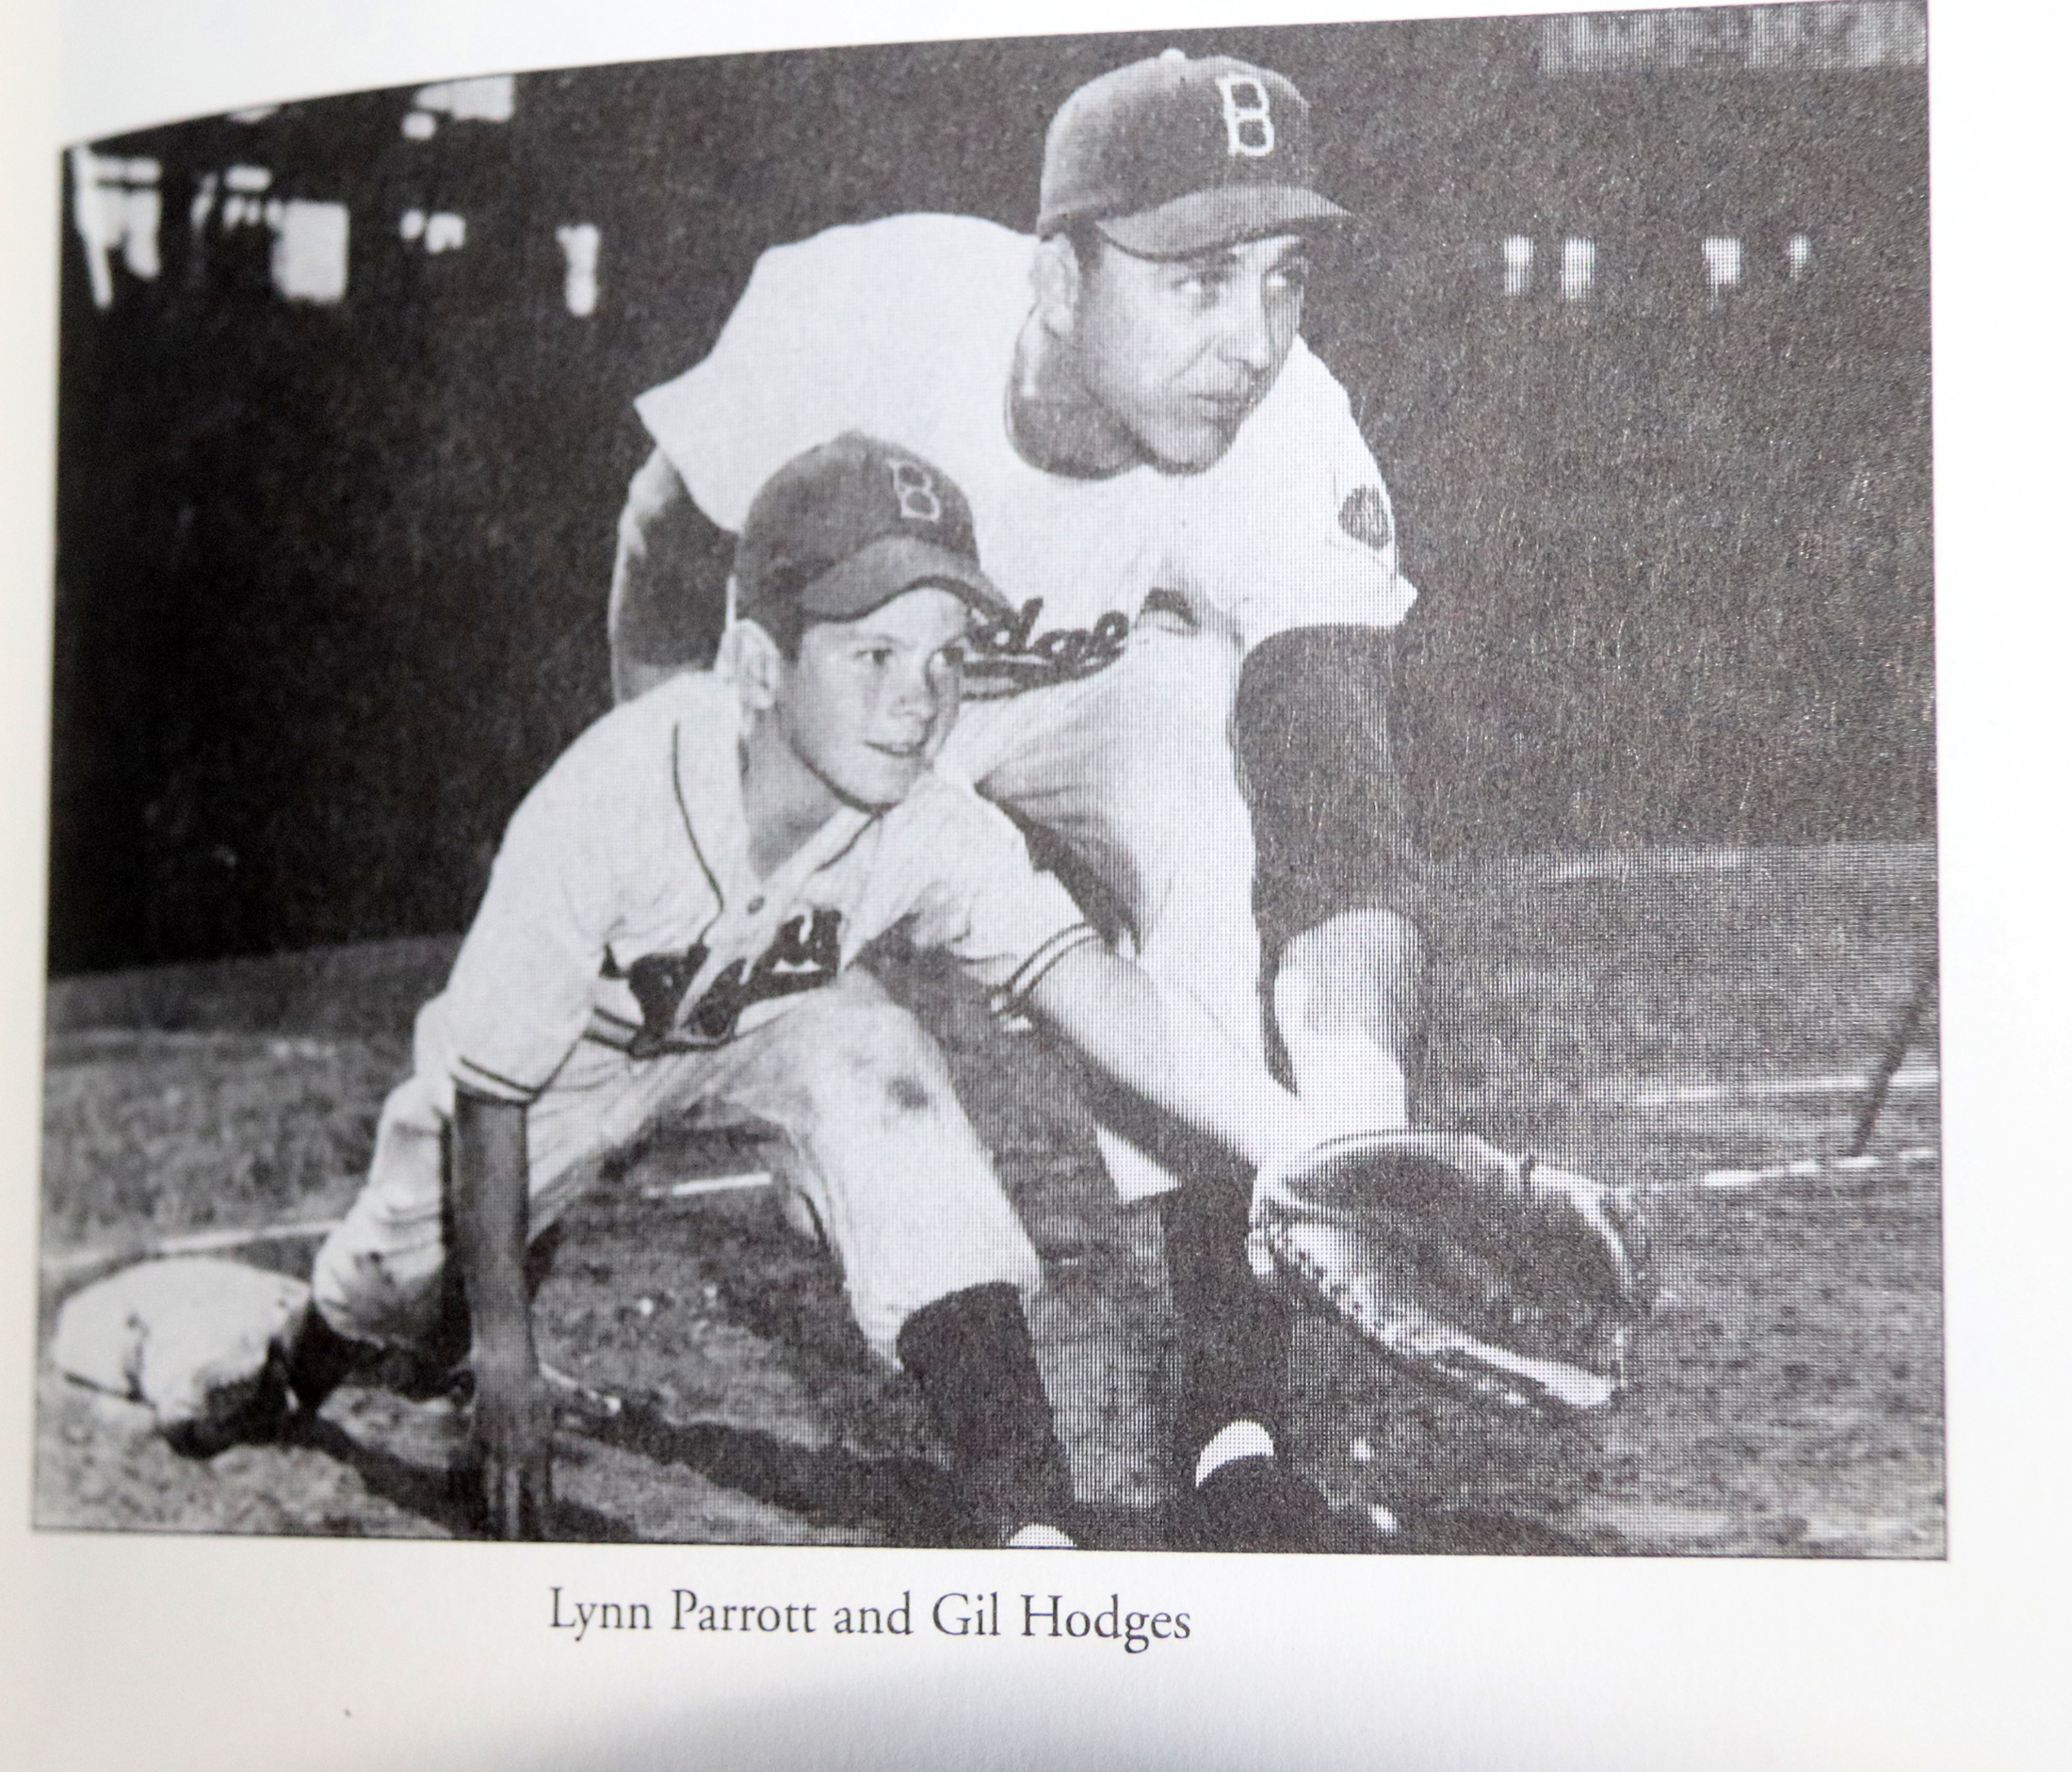 Comet coach trying to get Gil Hodges inducted into Baseball HOF